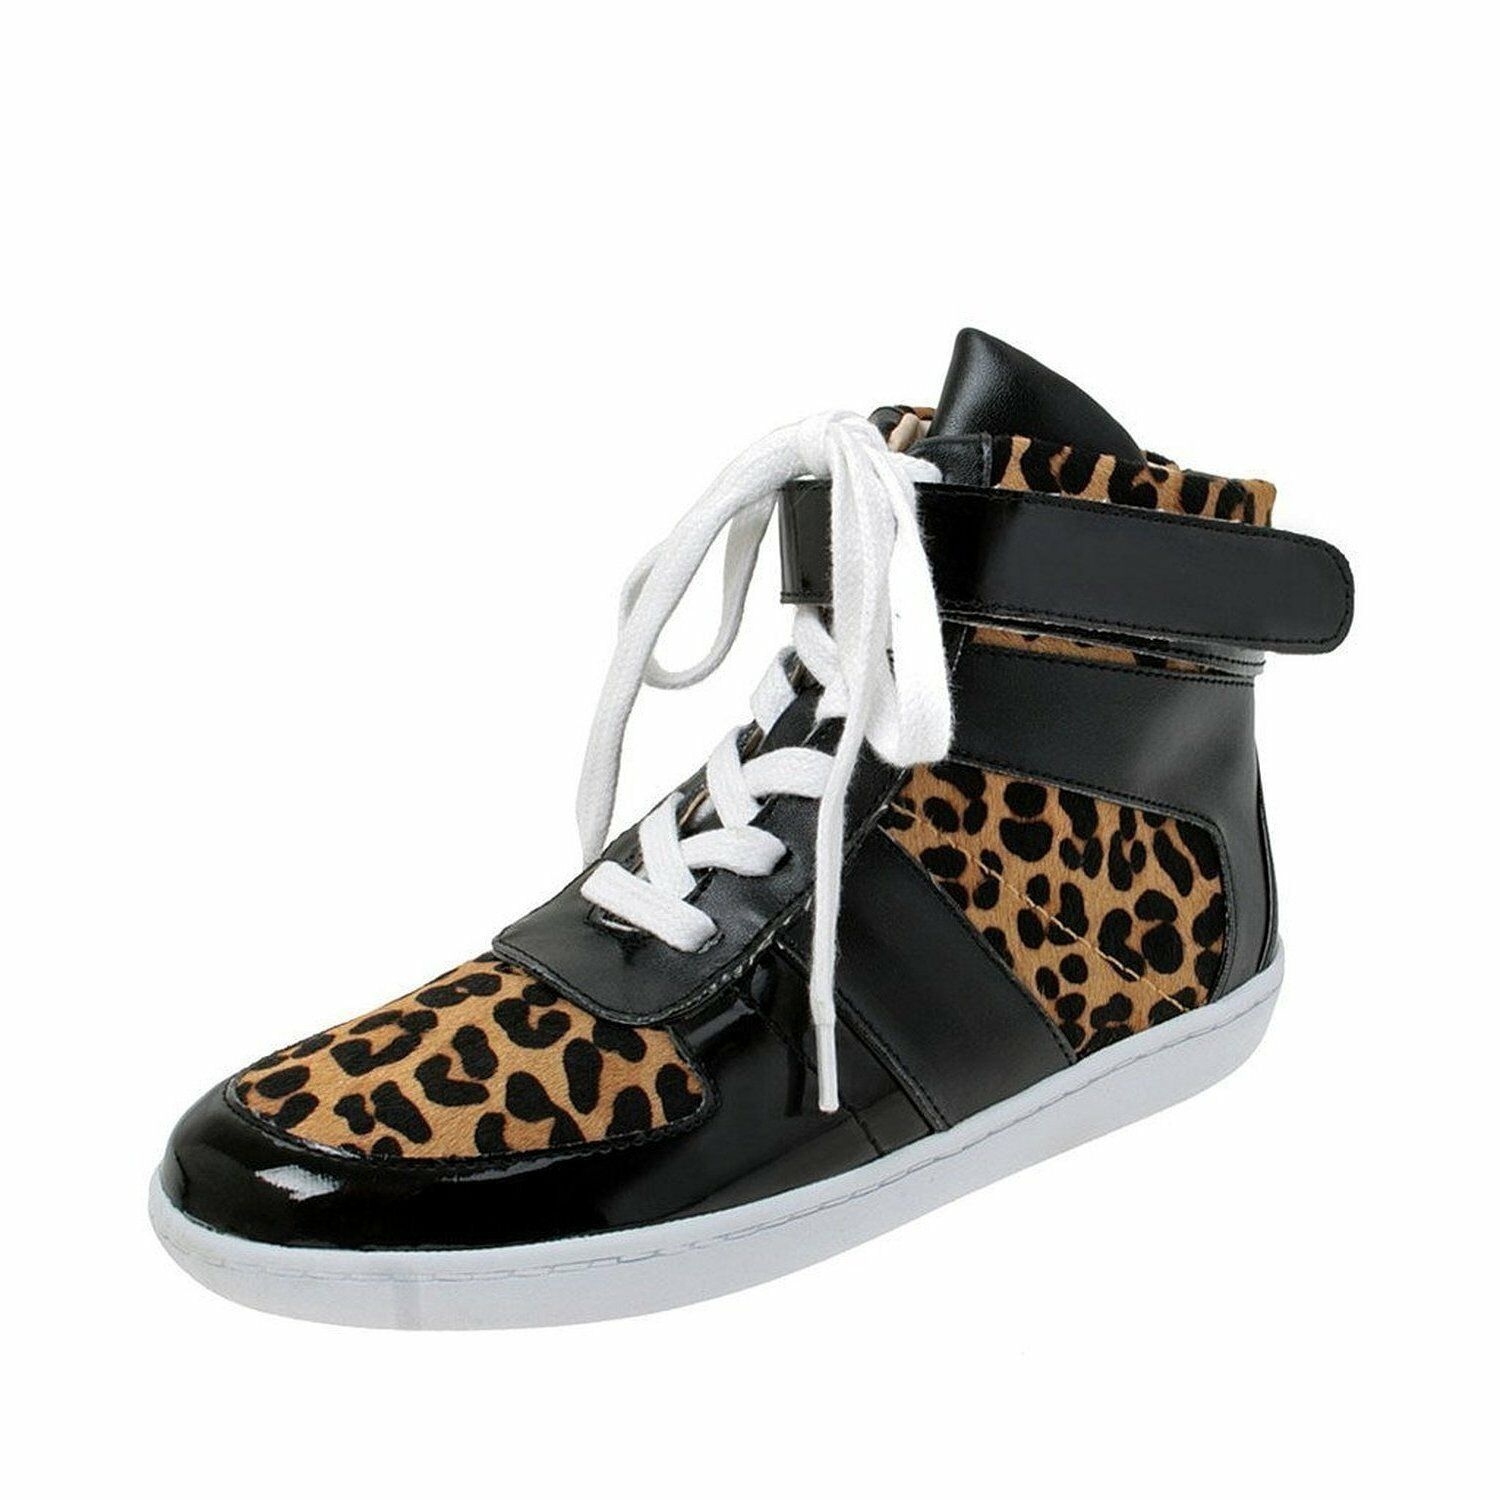 Nine West ROKSTAR Pony Hair Lace Up High Top Sneakers  (Women)